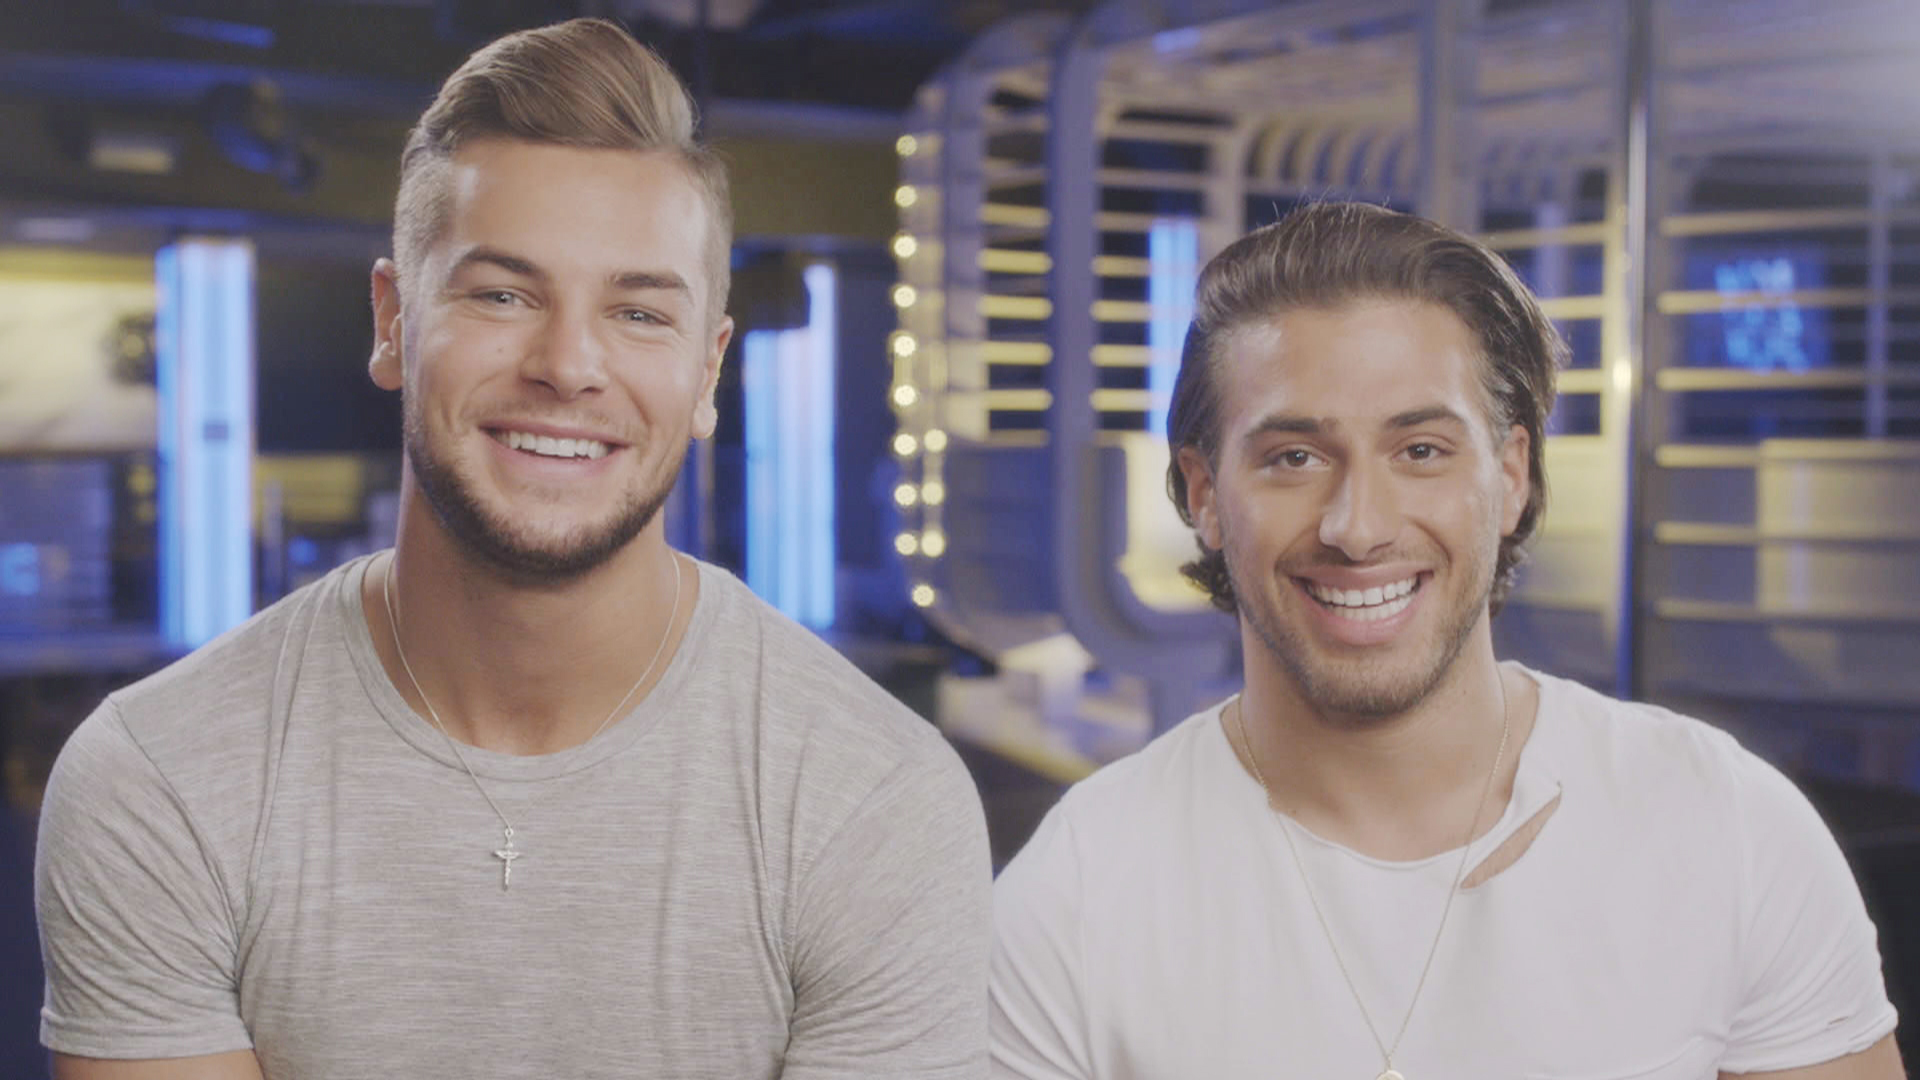 Chris Hughes and Kem Cetinay